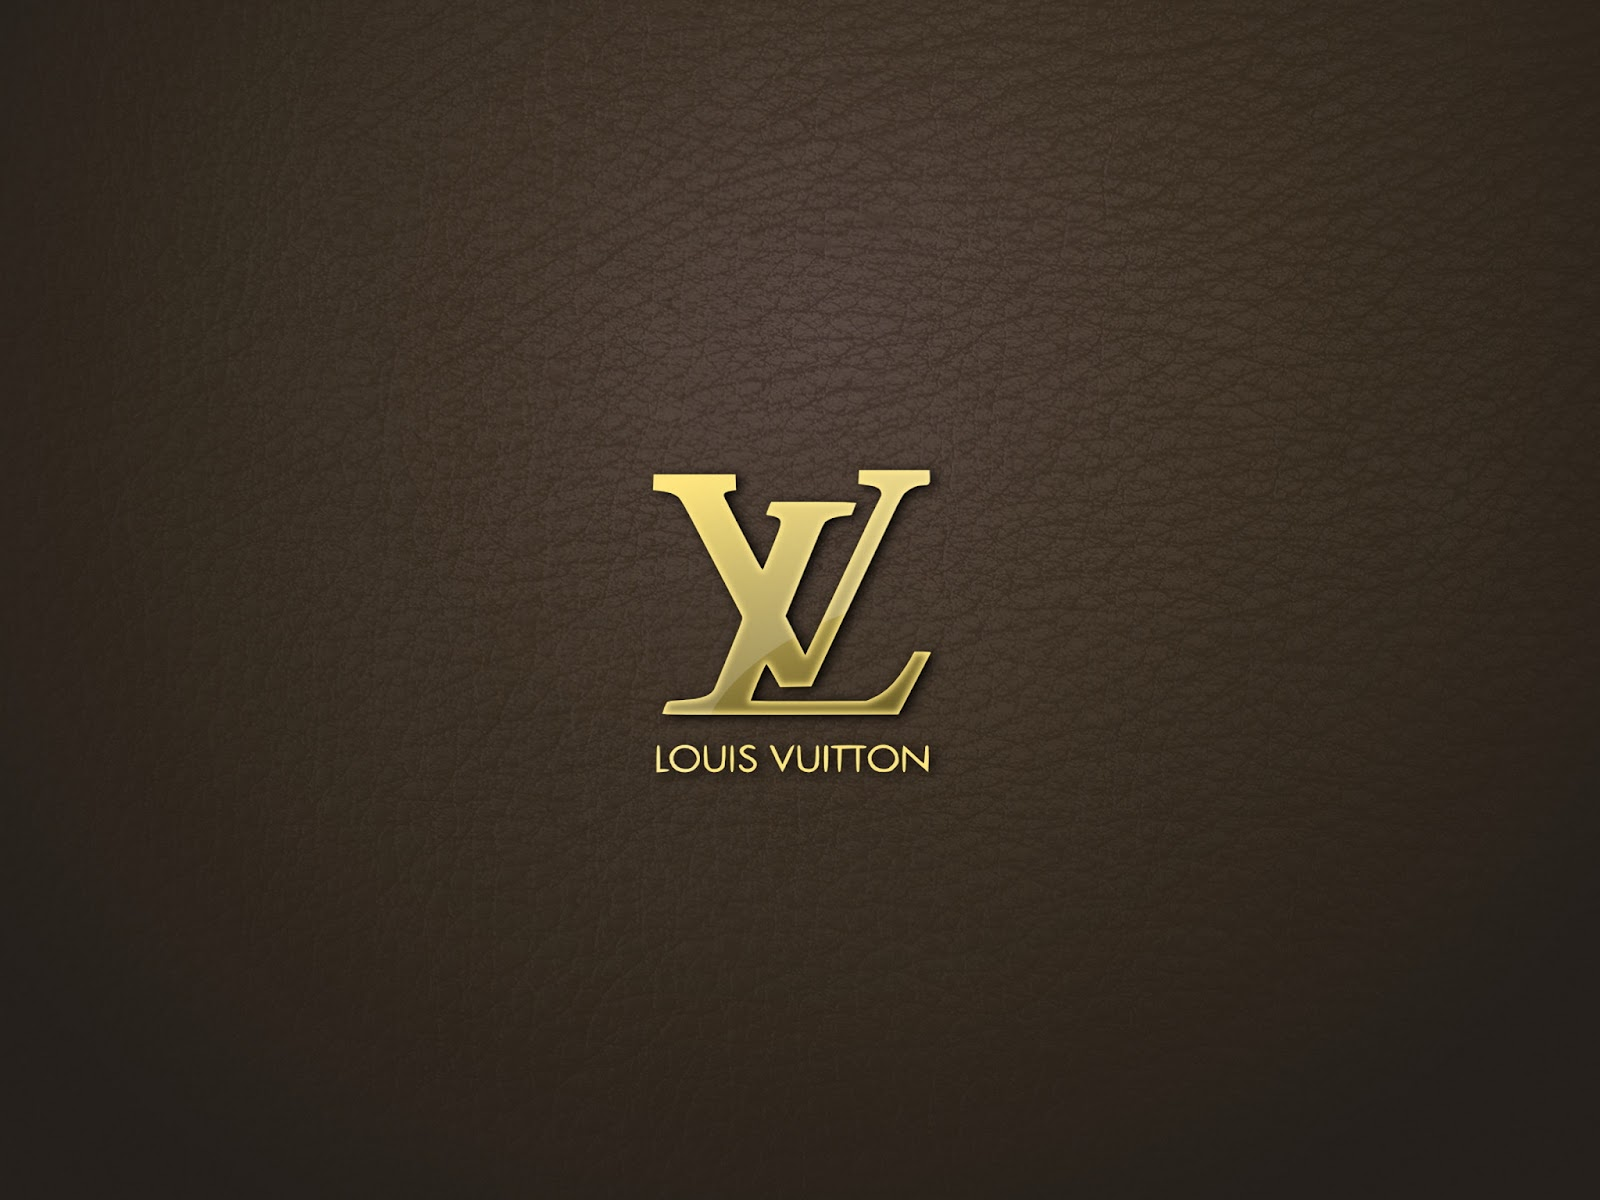 Pictures Louis Vuitton Ipad Wallpaper Ipad Retina Hd Wallpapers 1600x1200